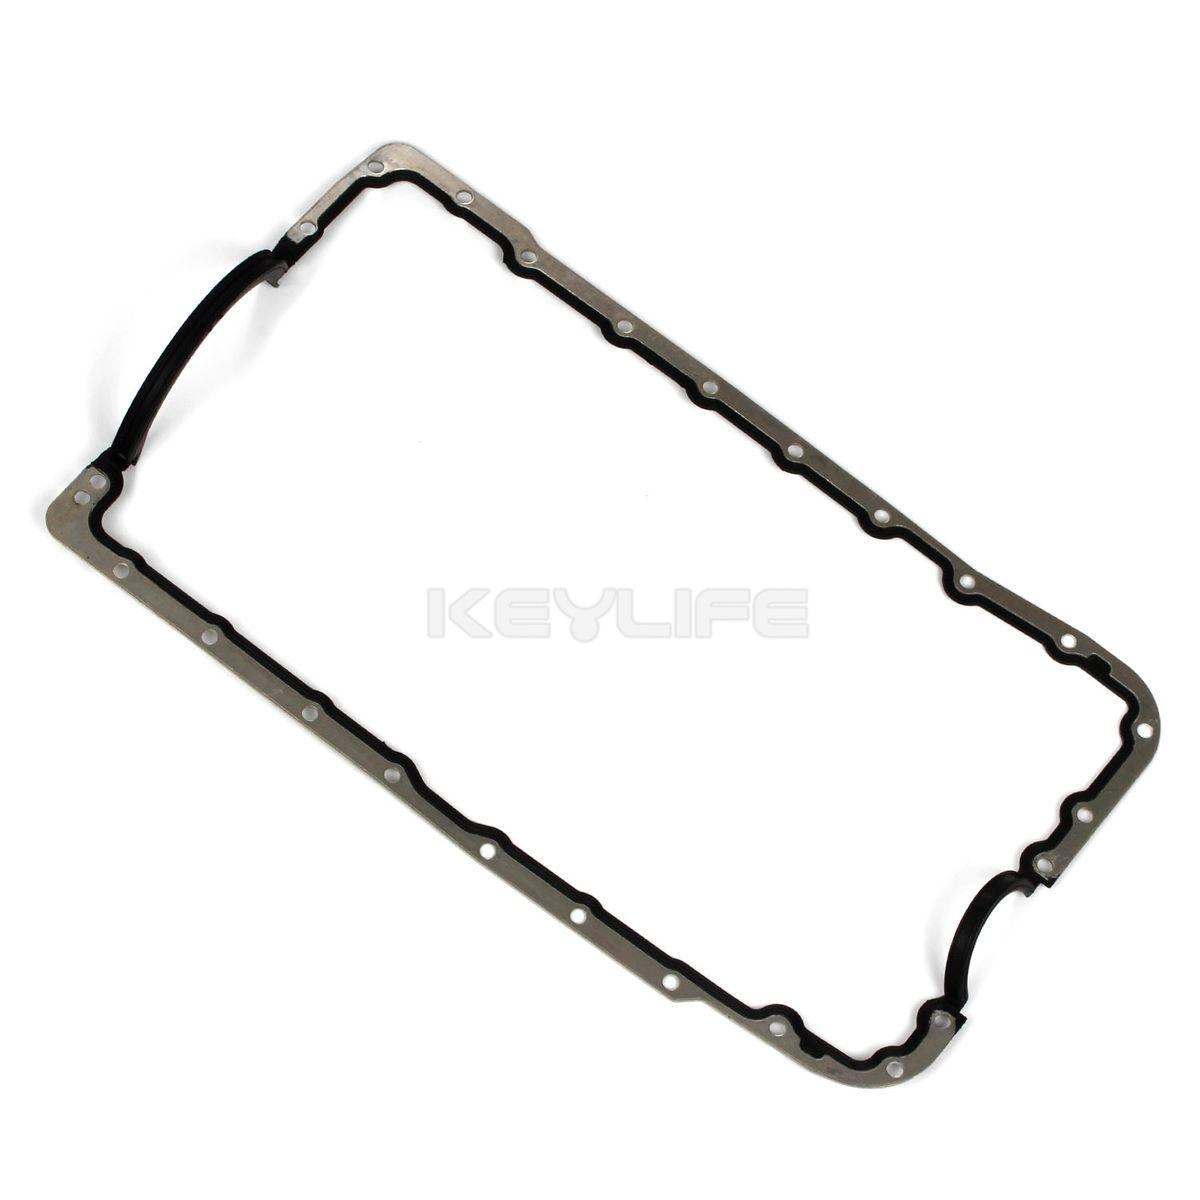 Oil Pan Gaskets Fits 94 11 Ford Aerostar Explorer Mustang